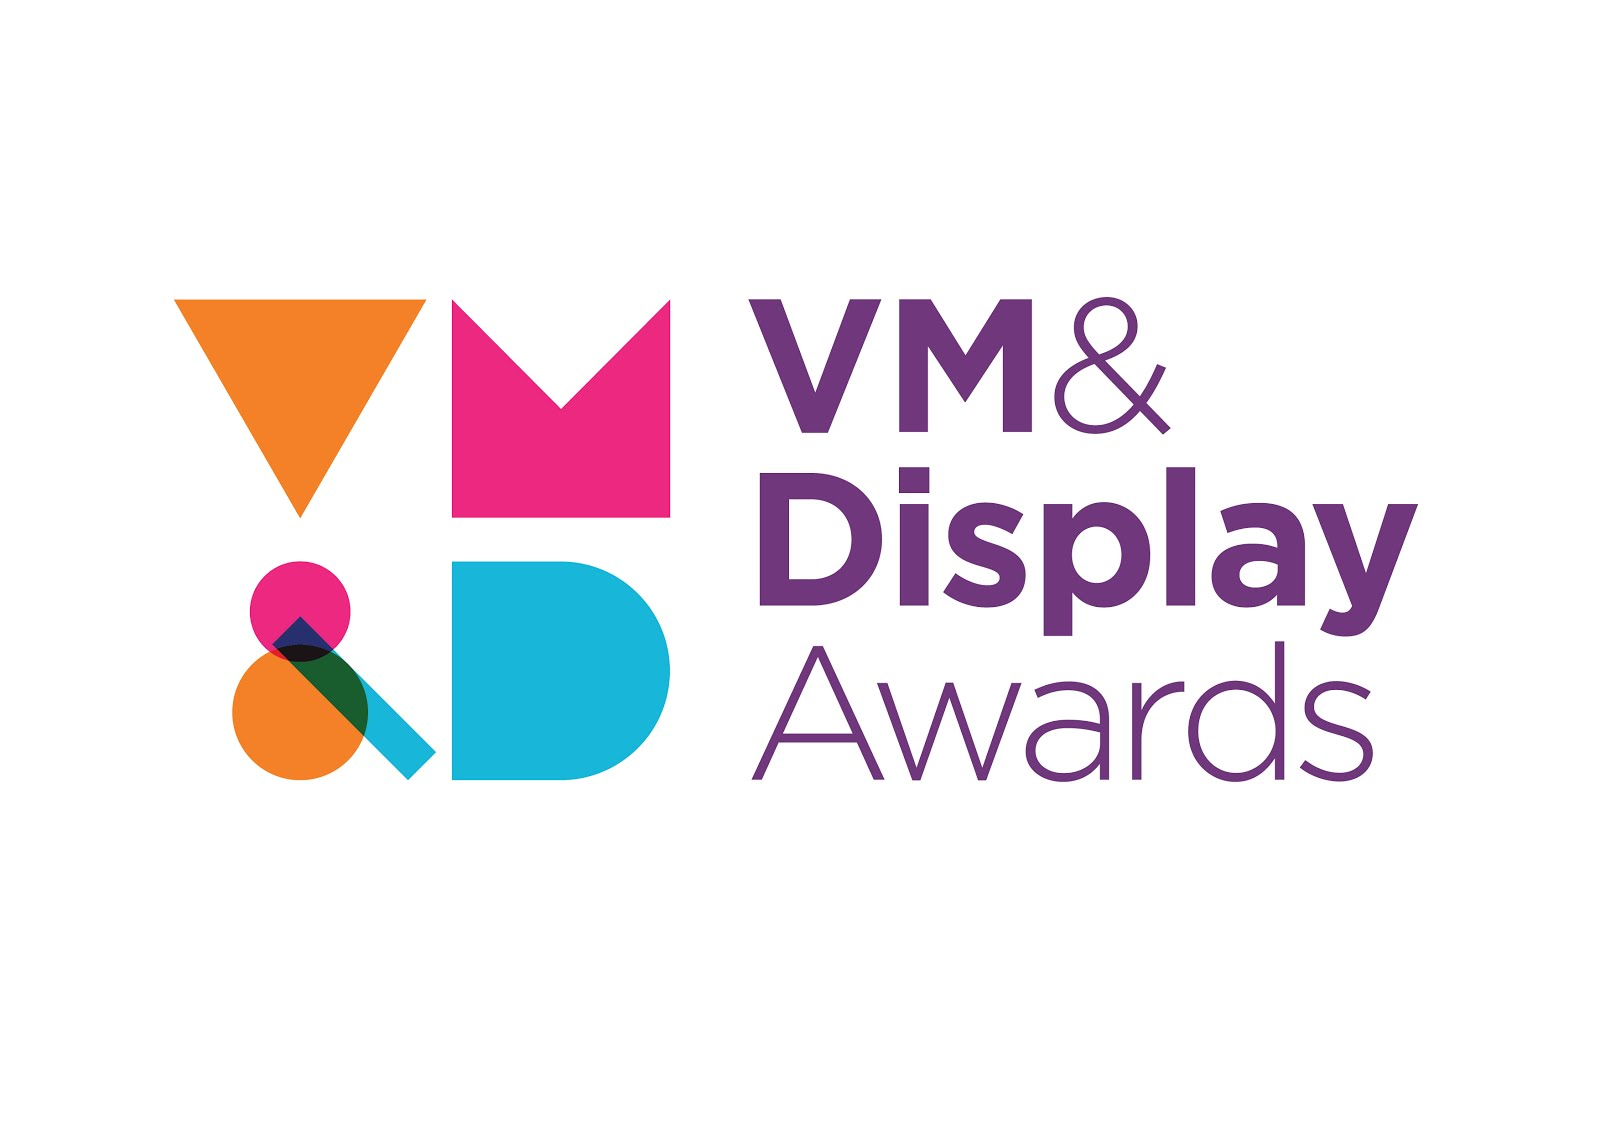 VM & DISPLAY AWARDS 2018